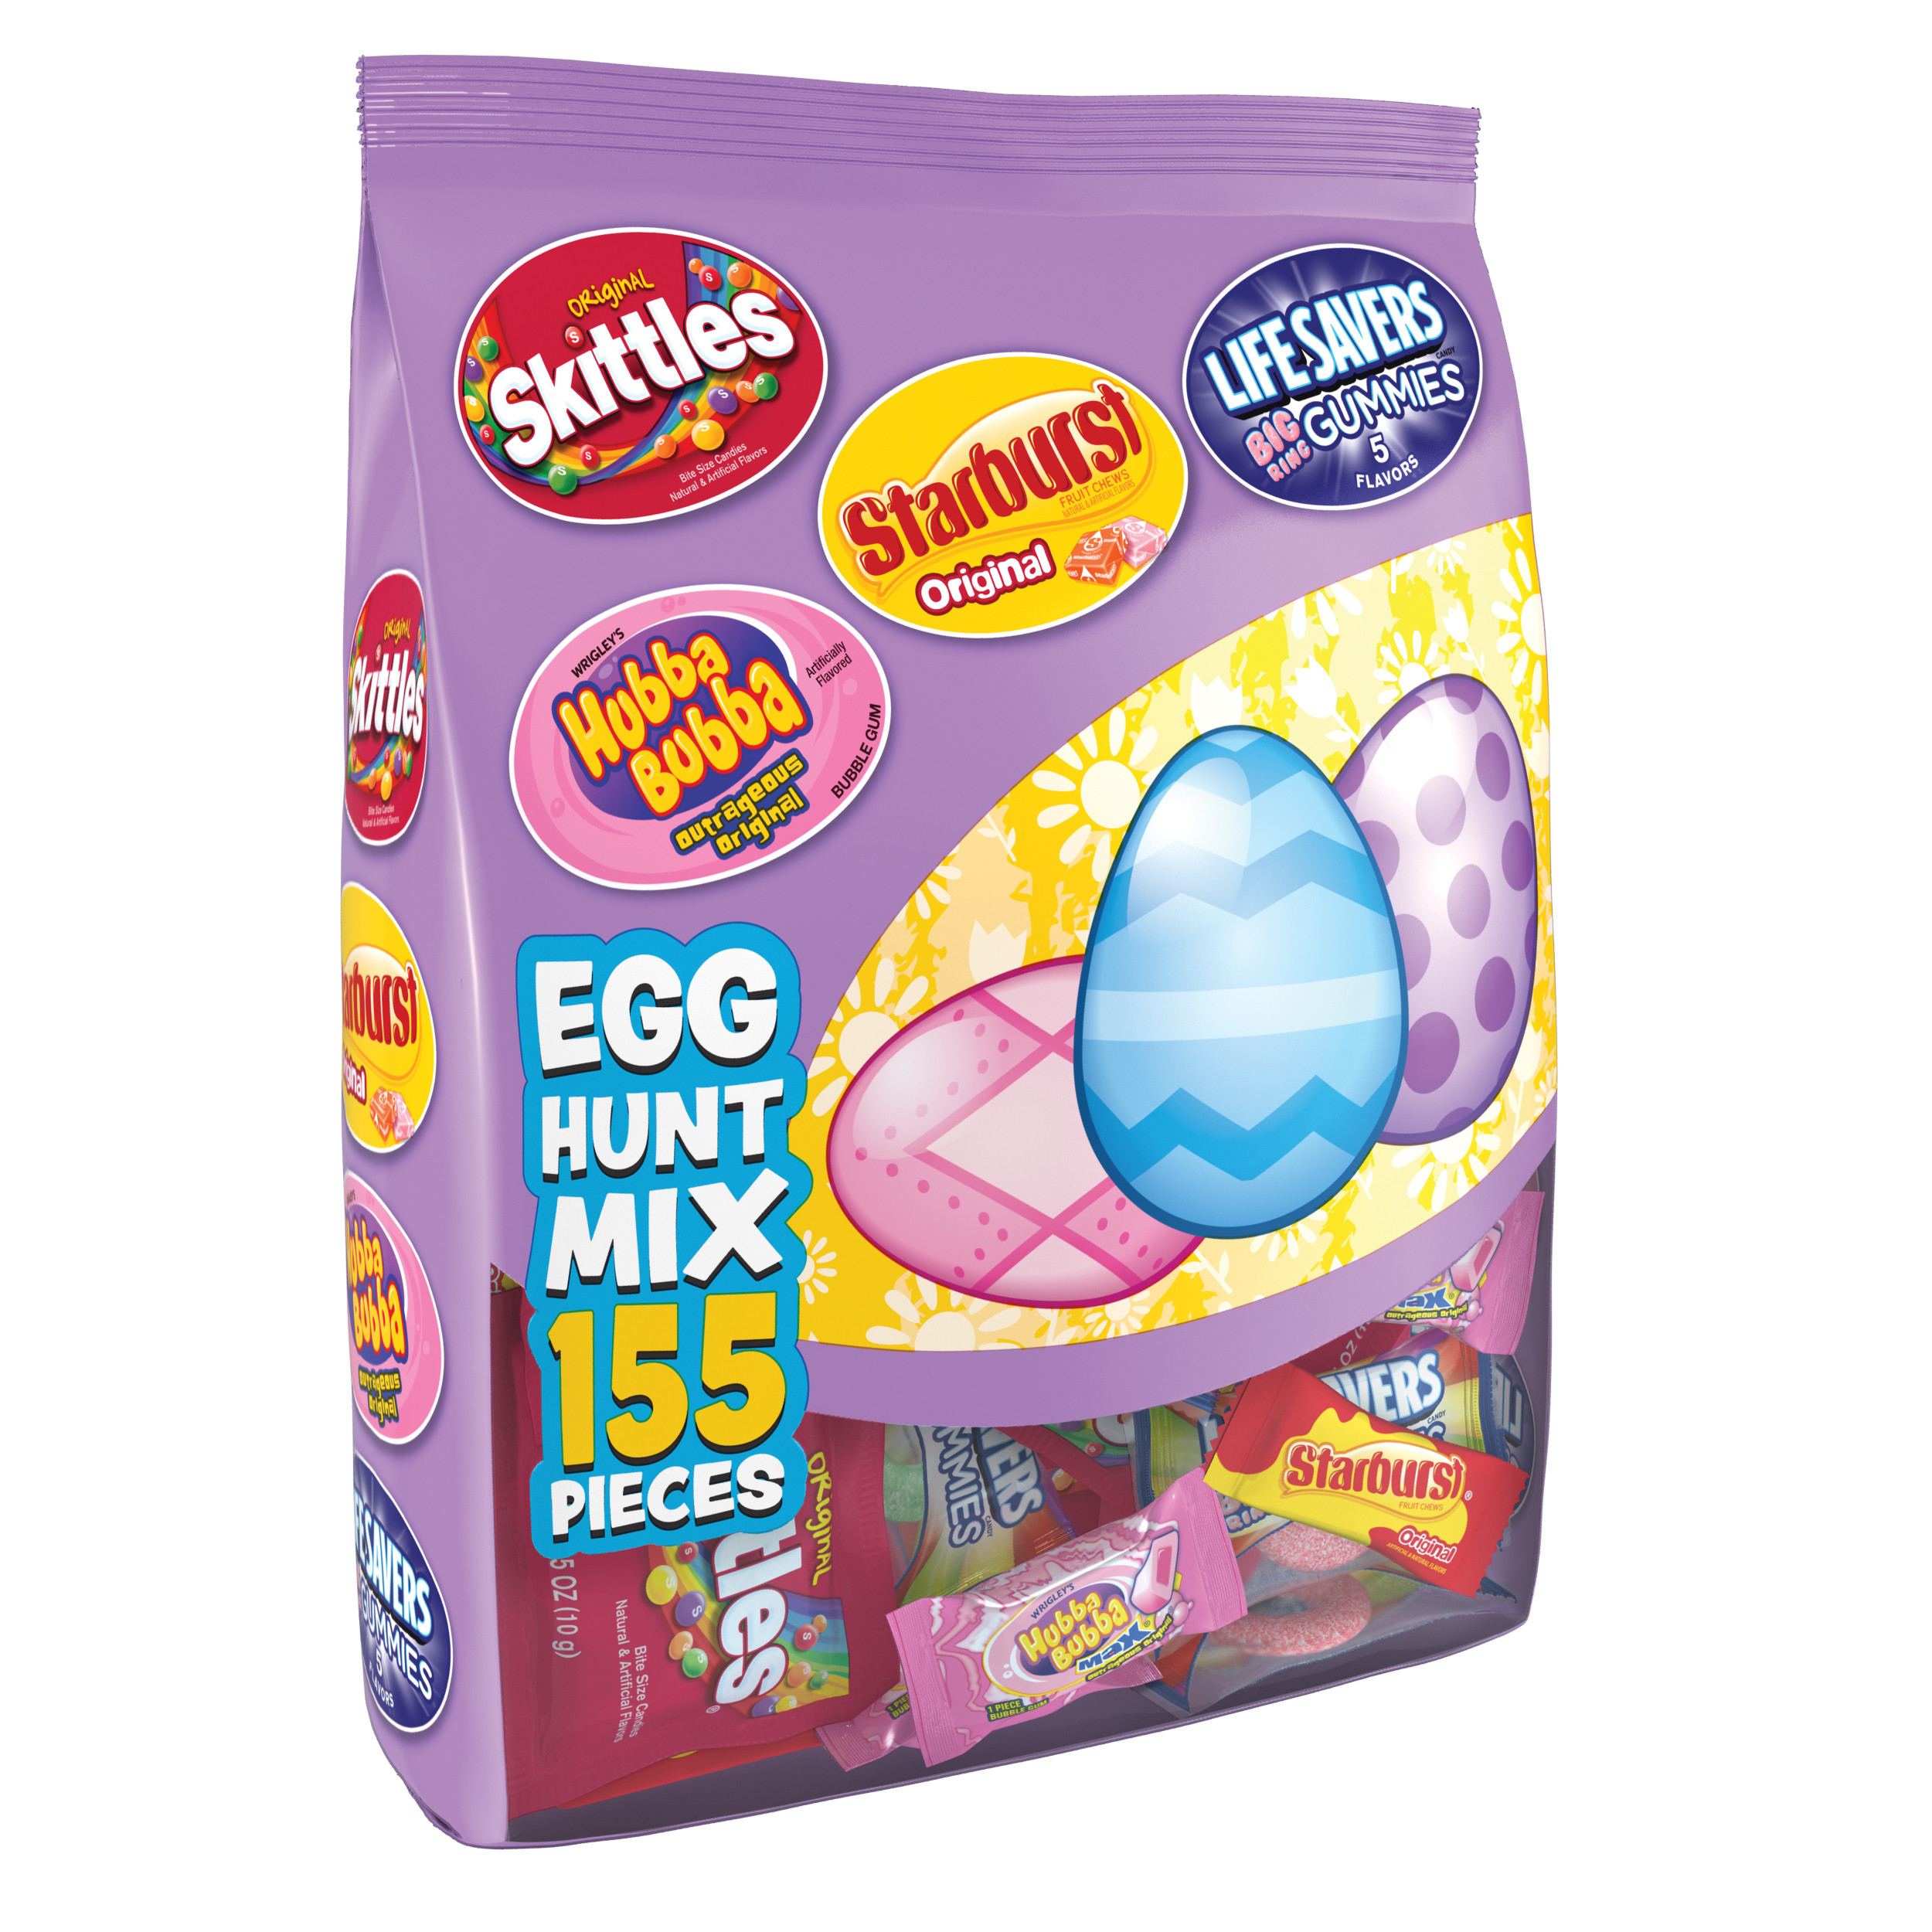 Assorted Egg Hunt Mix Candy, 46.2 Oz., 155 Count